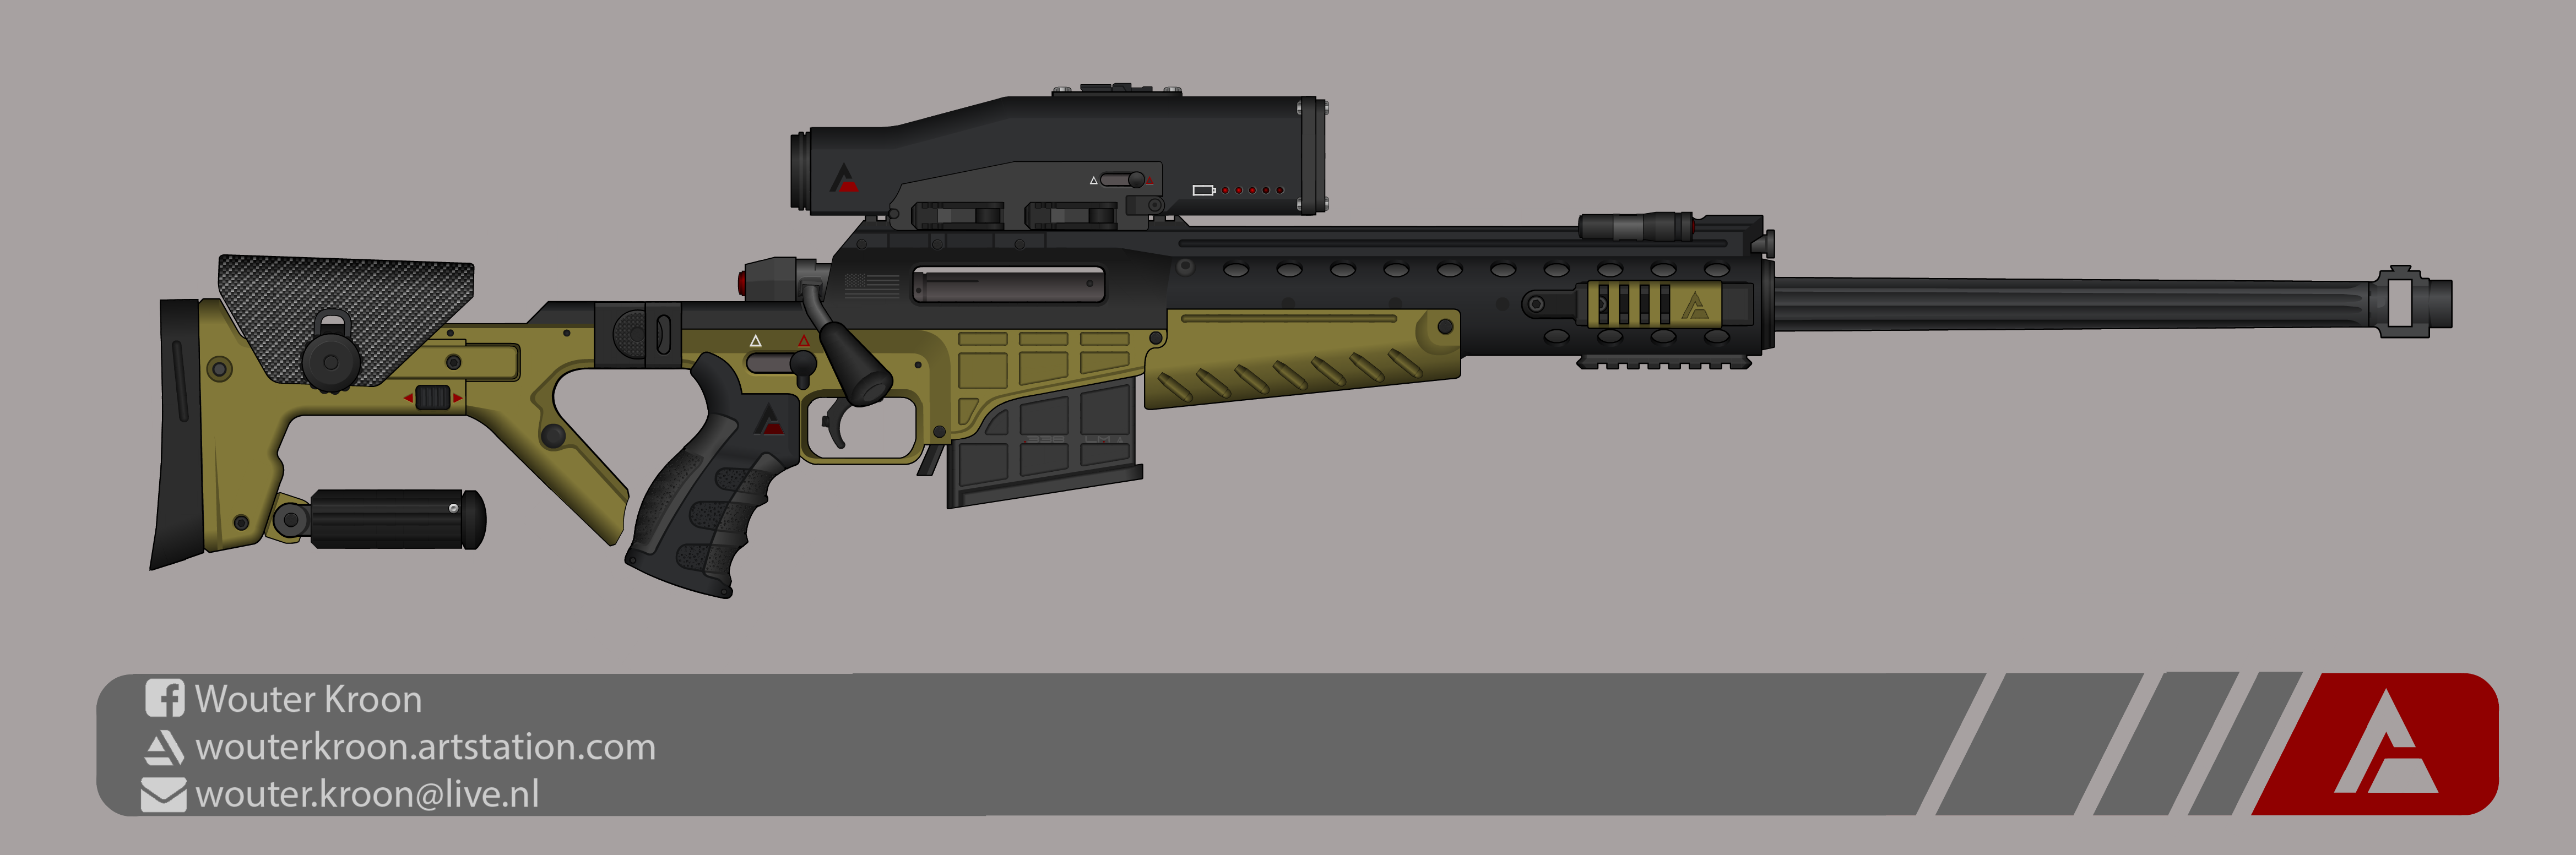 Quicksilver Industries:  'Dragonfly' Sniper Rifle by Shockwave9001